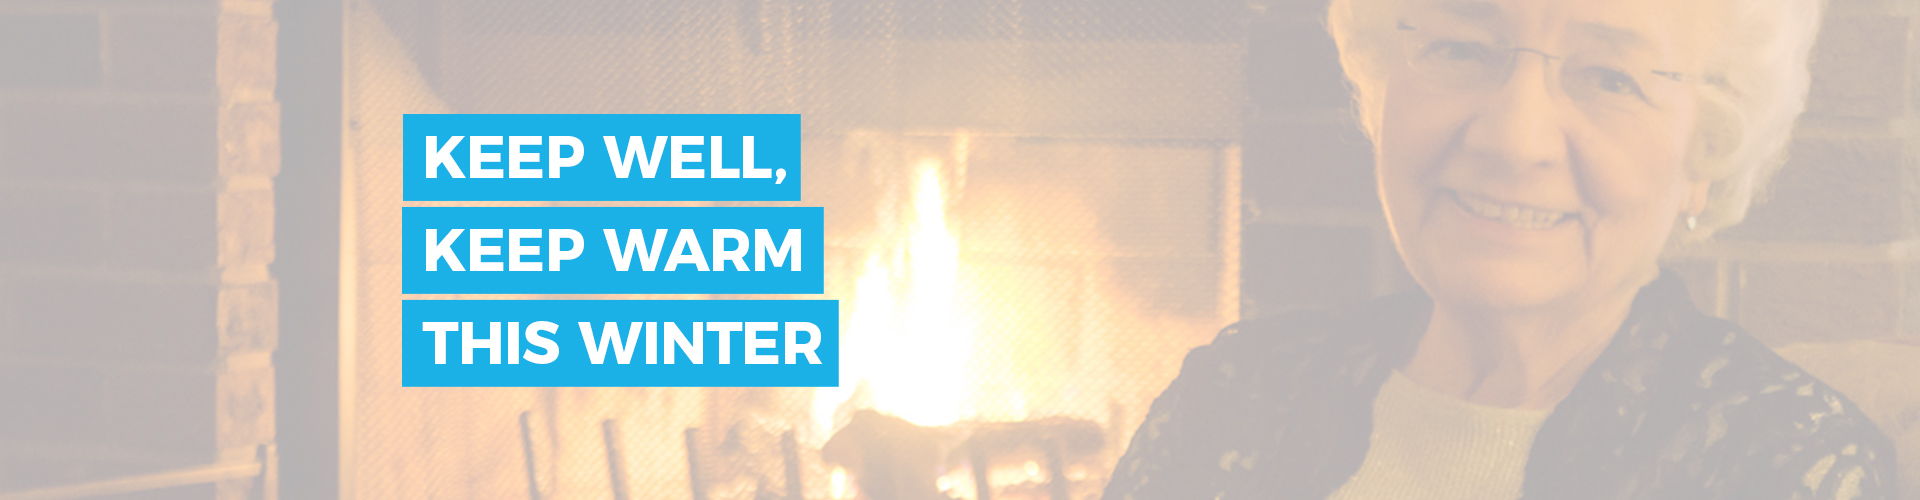 keep-warm-keep-well-header